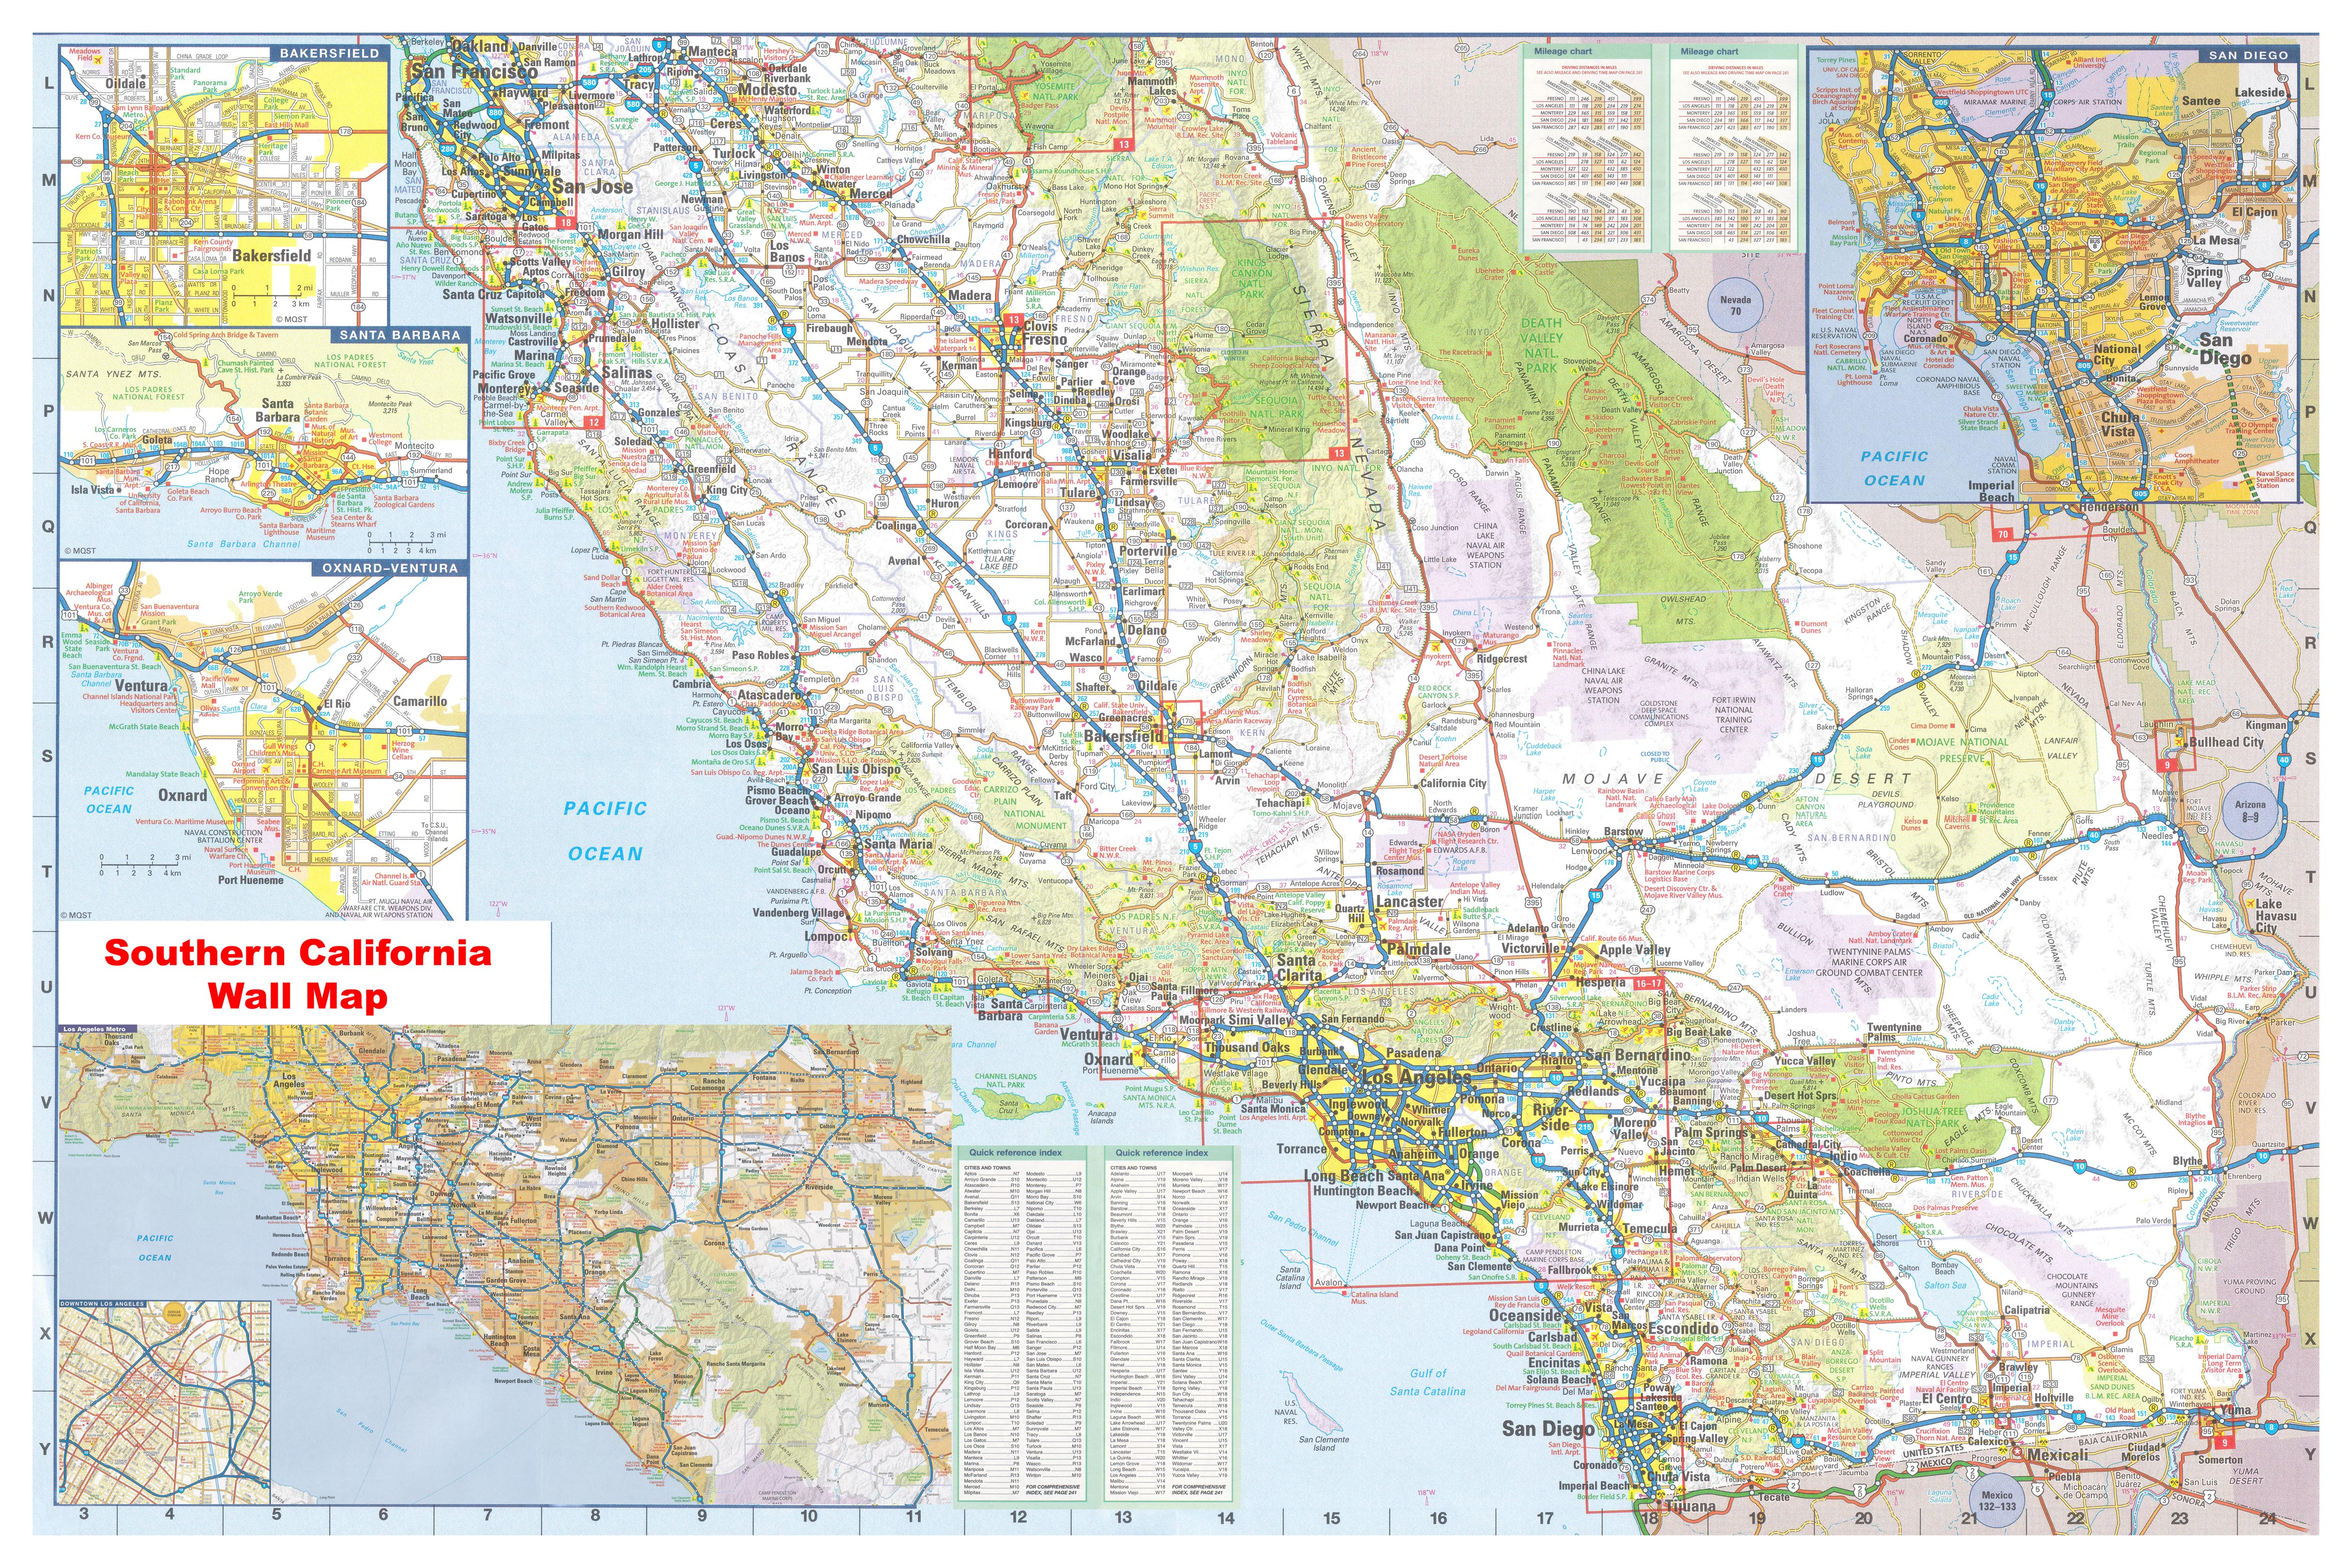 California Southern Wall Map Executive Commercial Edition - California Wall Map